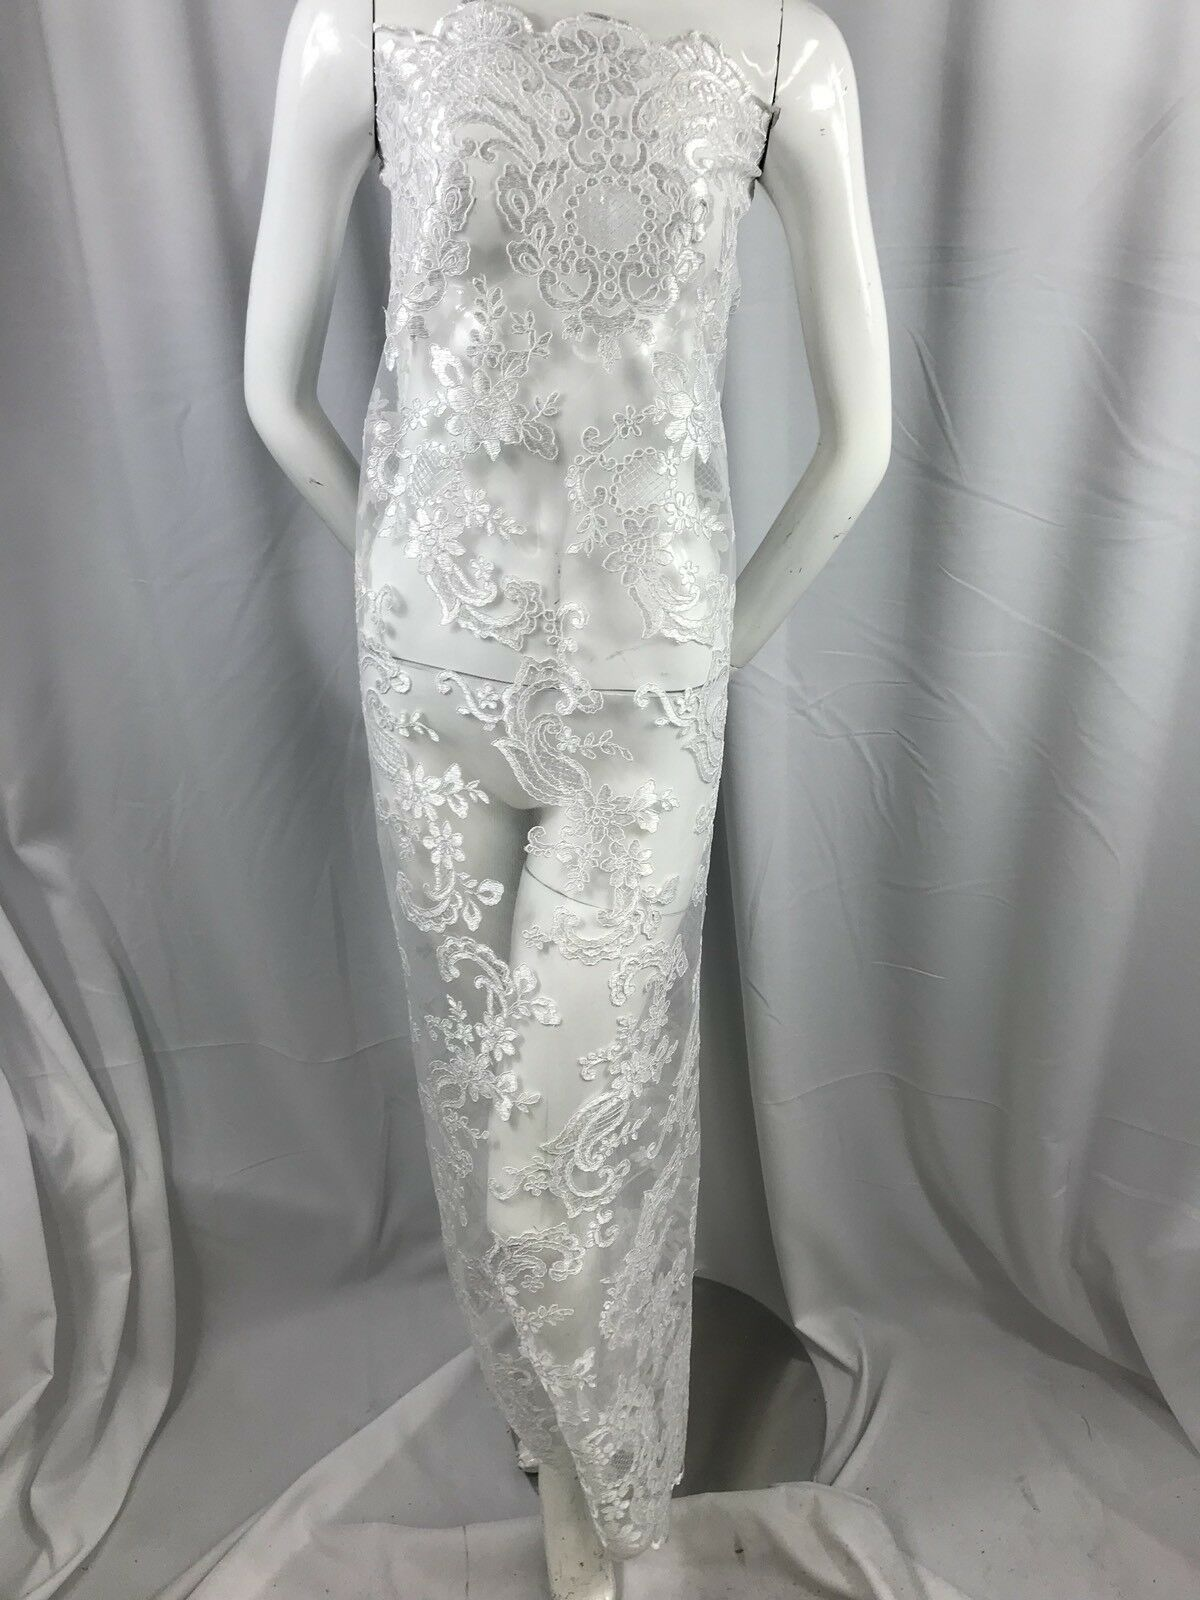 White Flower Mesh Dress Embroidered Bridal Wedding By The Yard Lace fabric